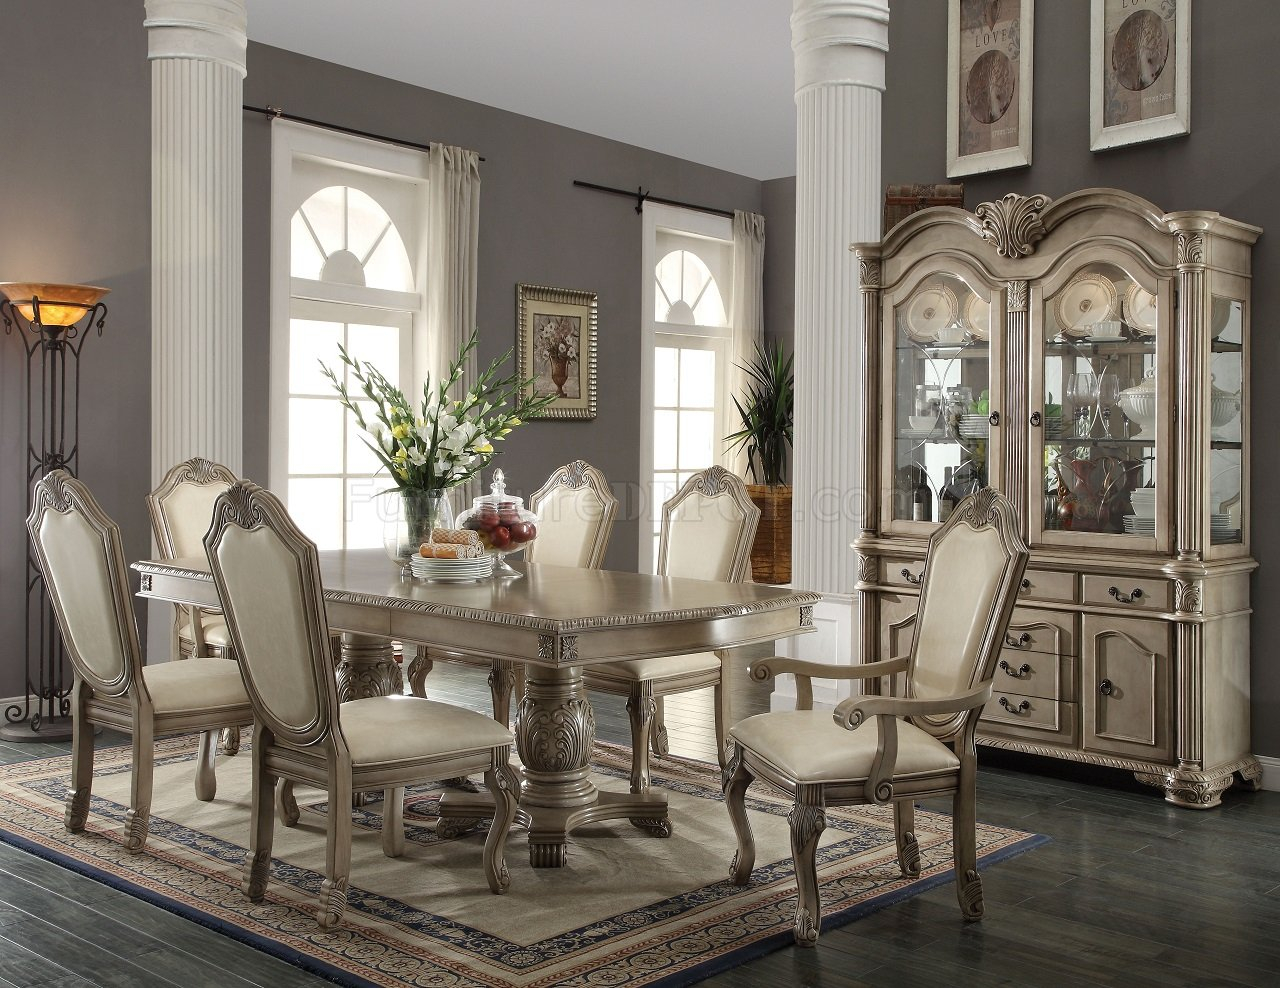 Dining Room Dining Room Table And Chairs For Sale Best Dining Room in 15 Some of the Coolest Tricks of How to Build White Living Room Set For Sale